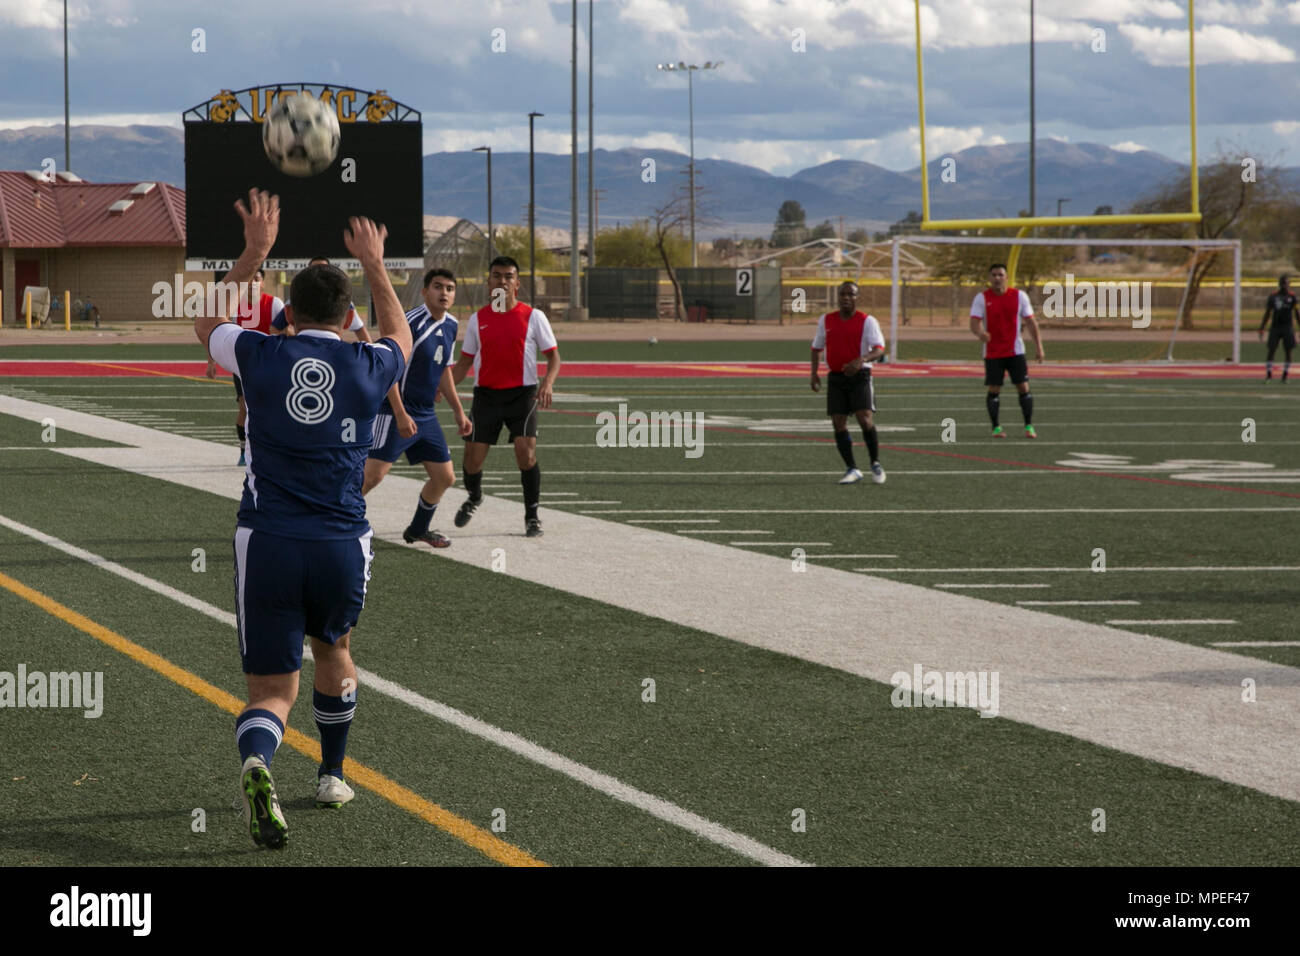 29 Palms Fc Stock Photos & 29 Palms Fc Stock Images - Alamy